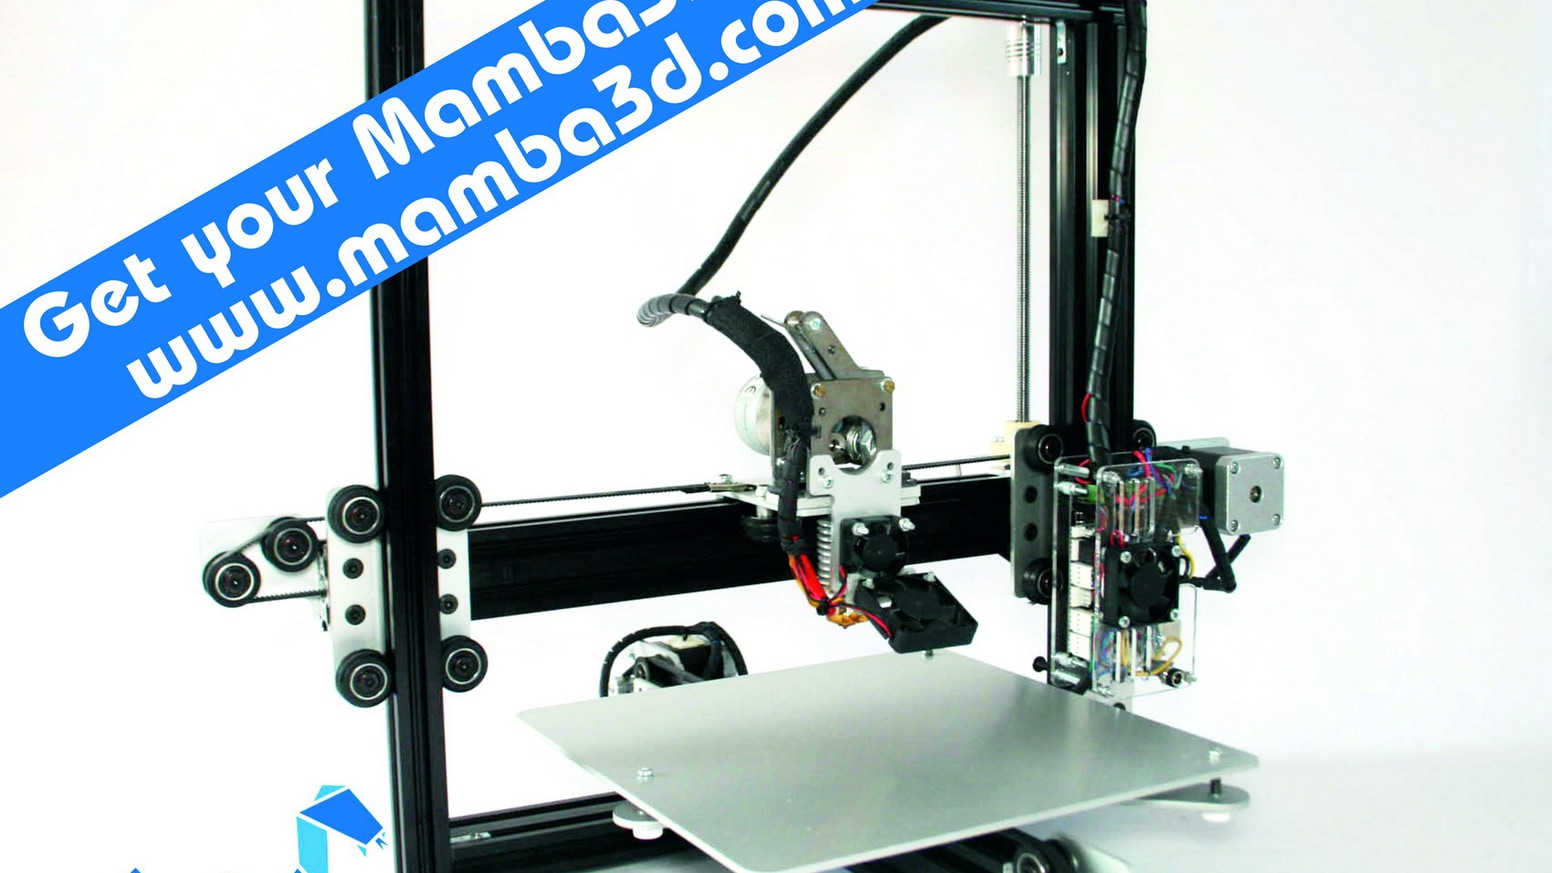 Mamba3d high quality open source 3d printer by mymatics for 3d printer build plans